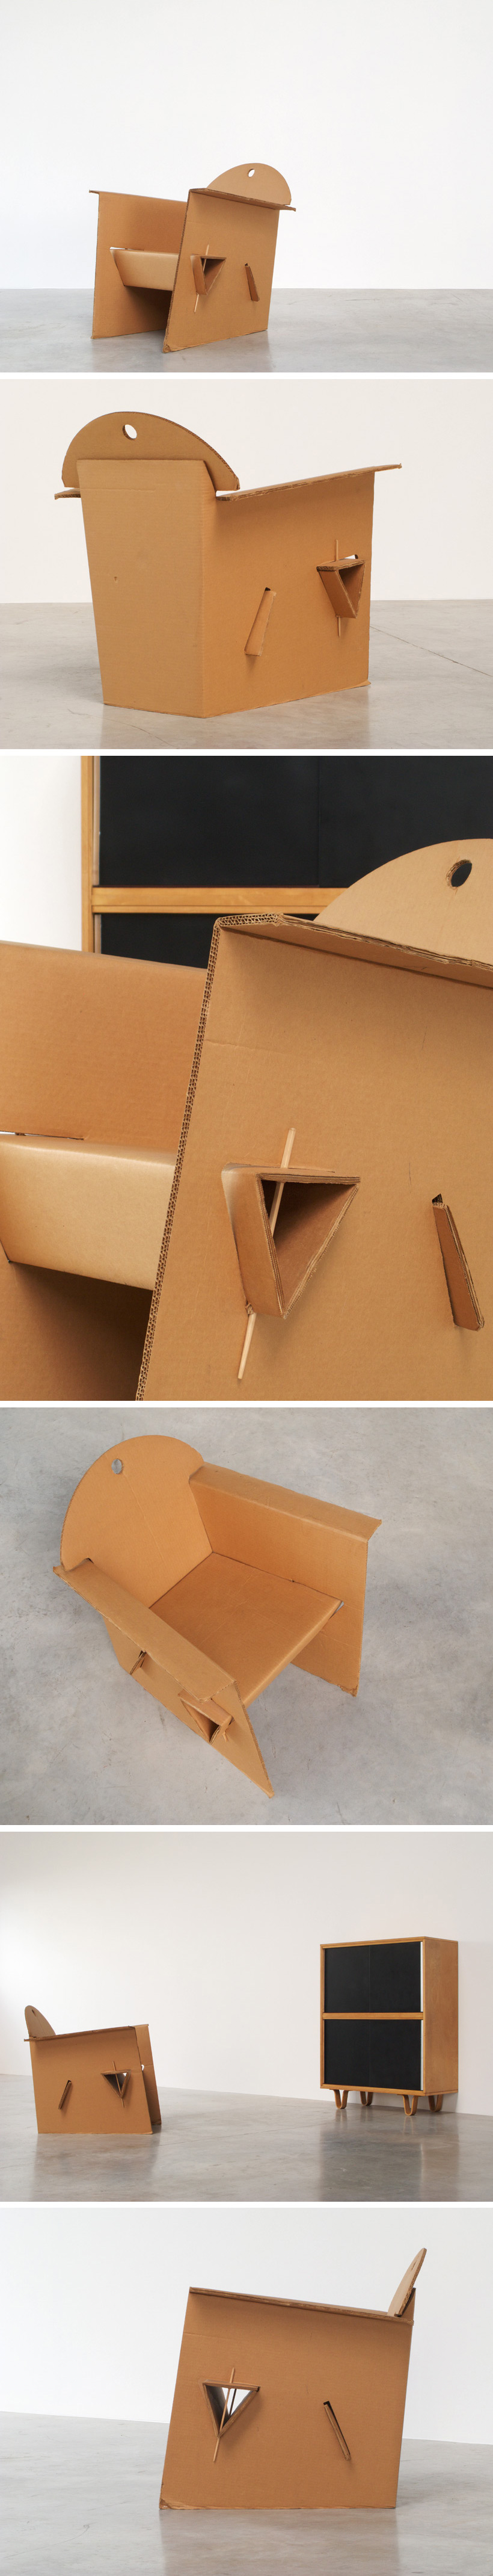 Olivier Leblois Kiosk chair or cardboard chair Large